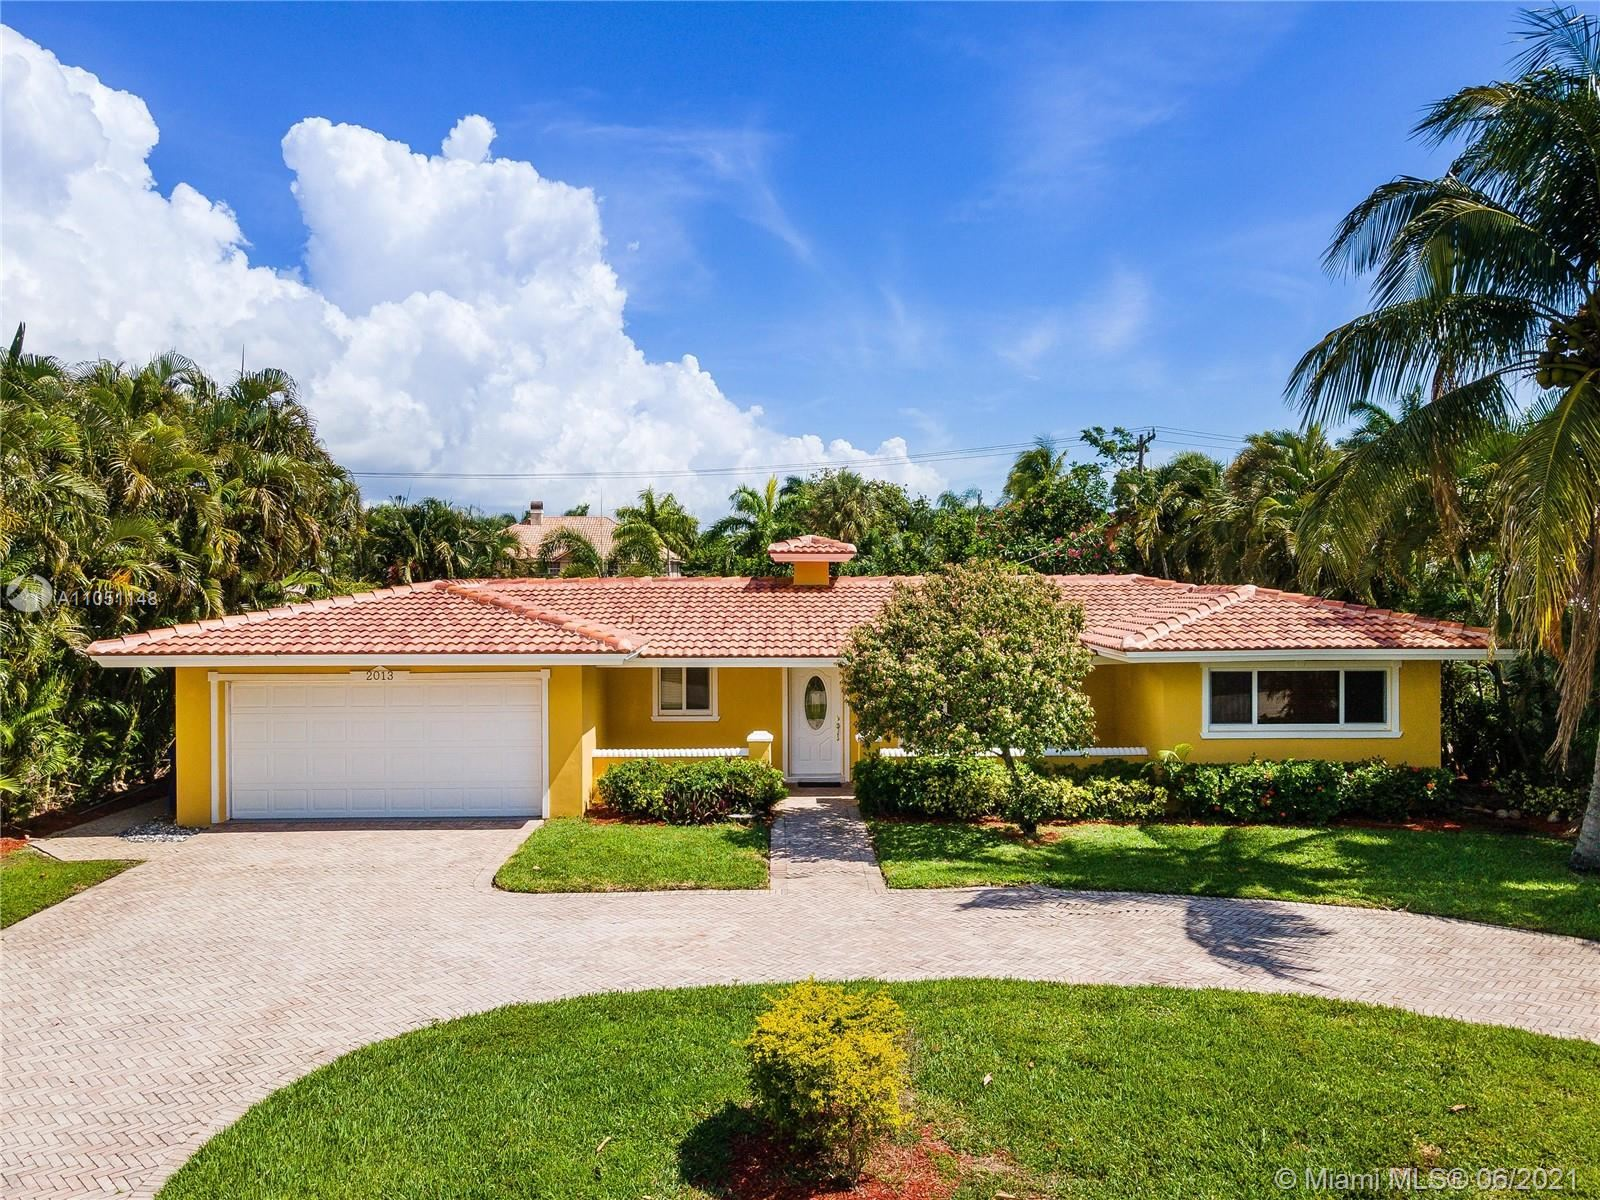 2013 Coco Palm Pl, Lauderdale by the Sea, FL 33062 - #: A11051148